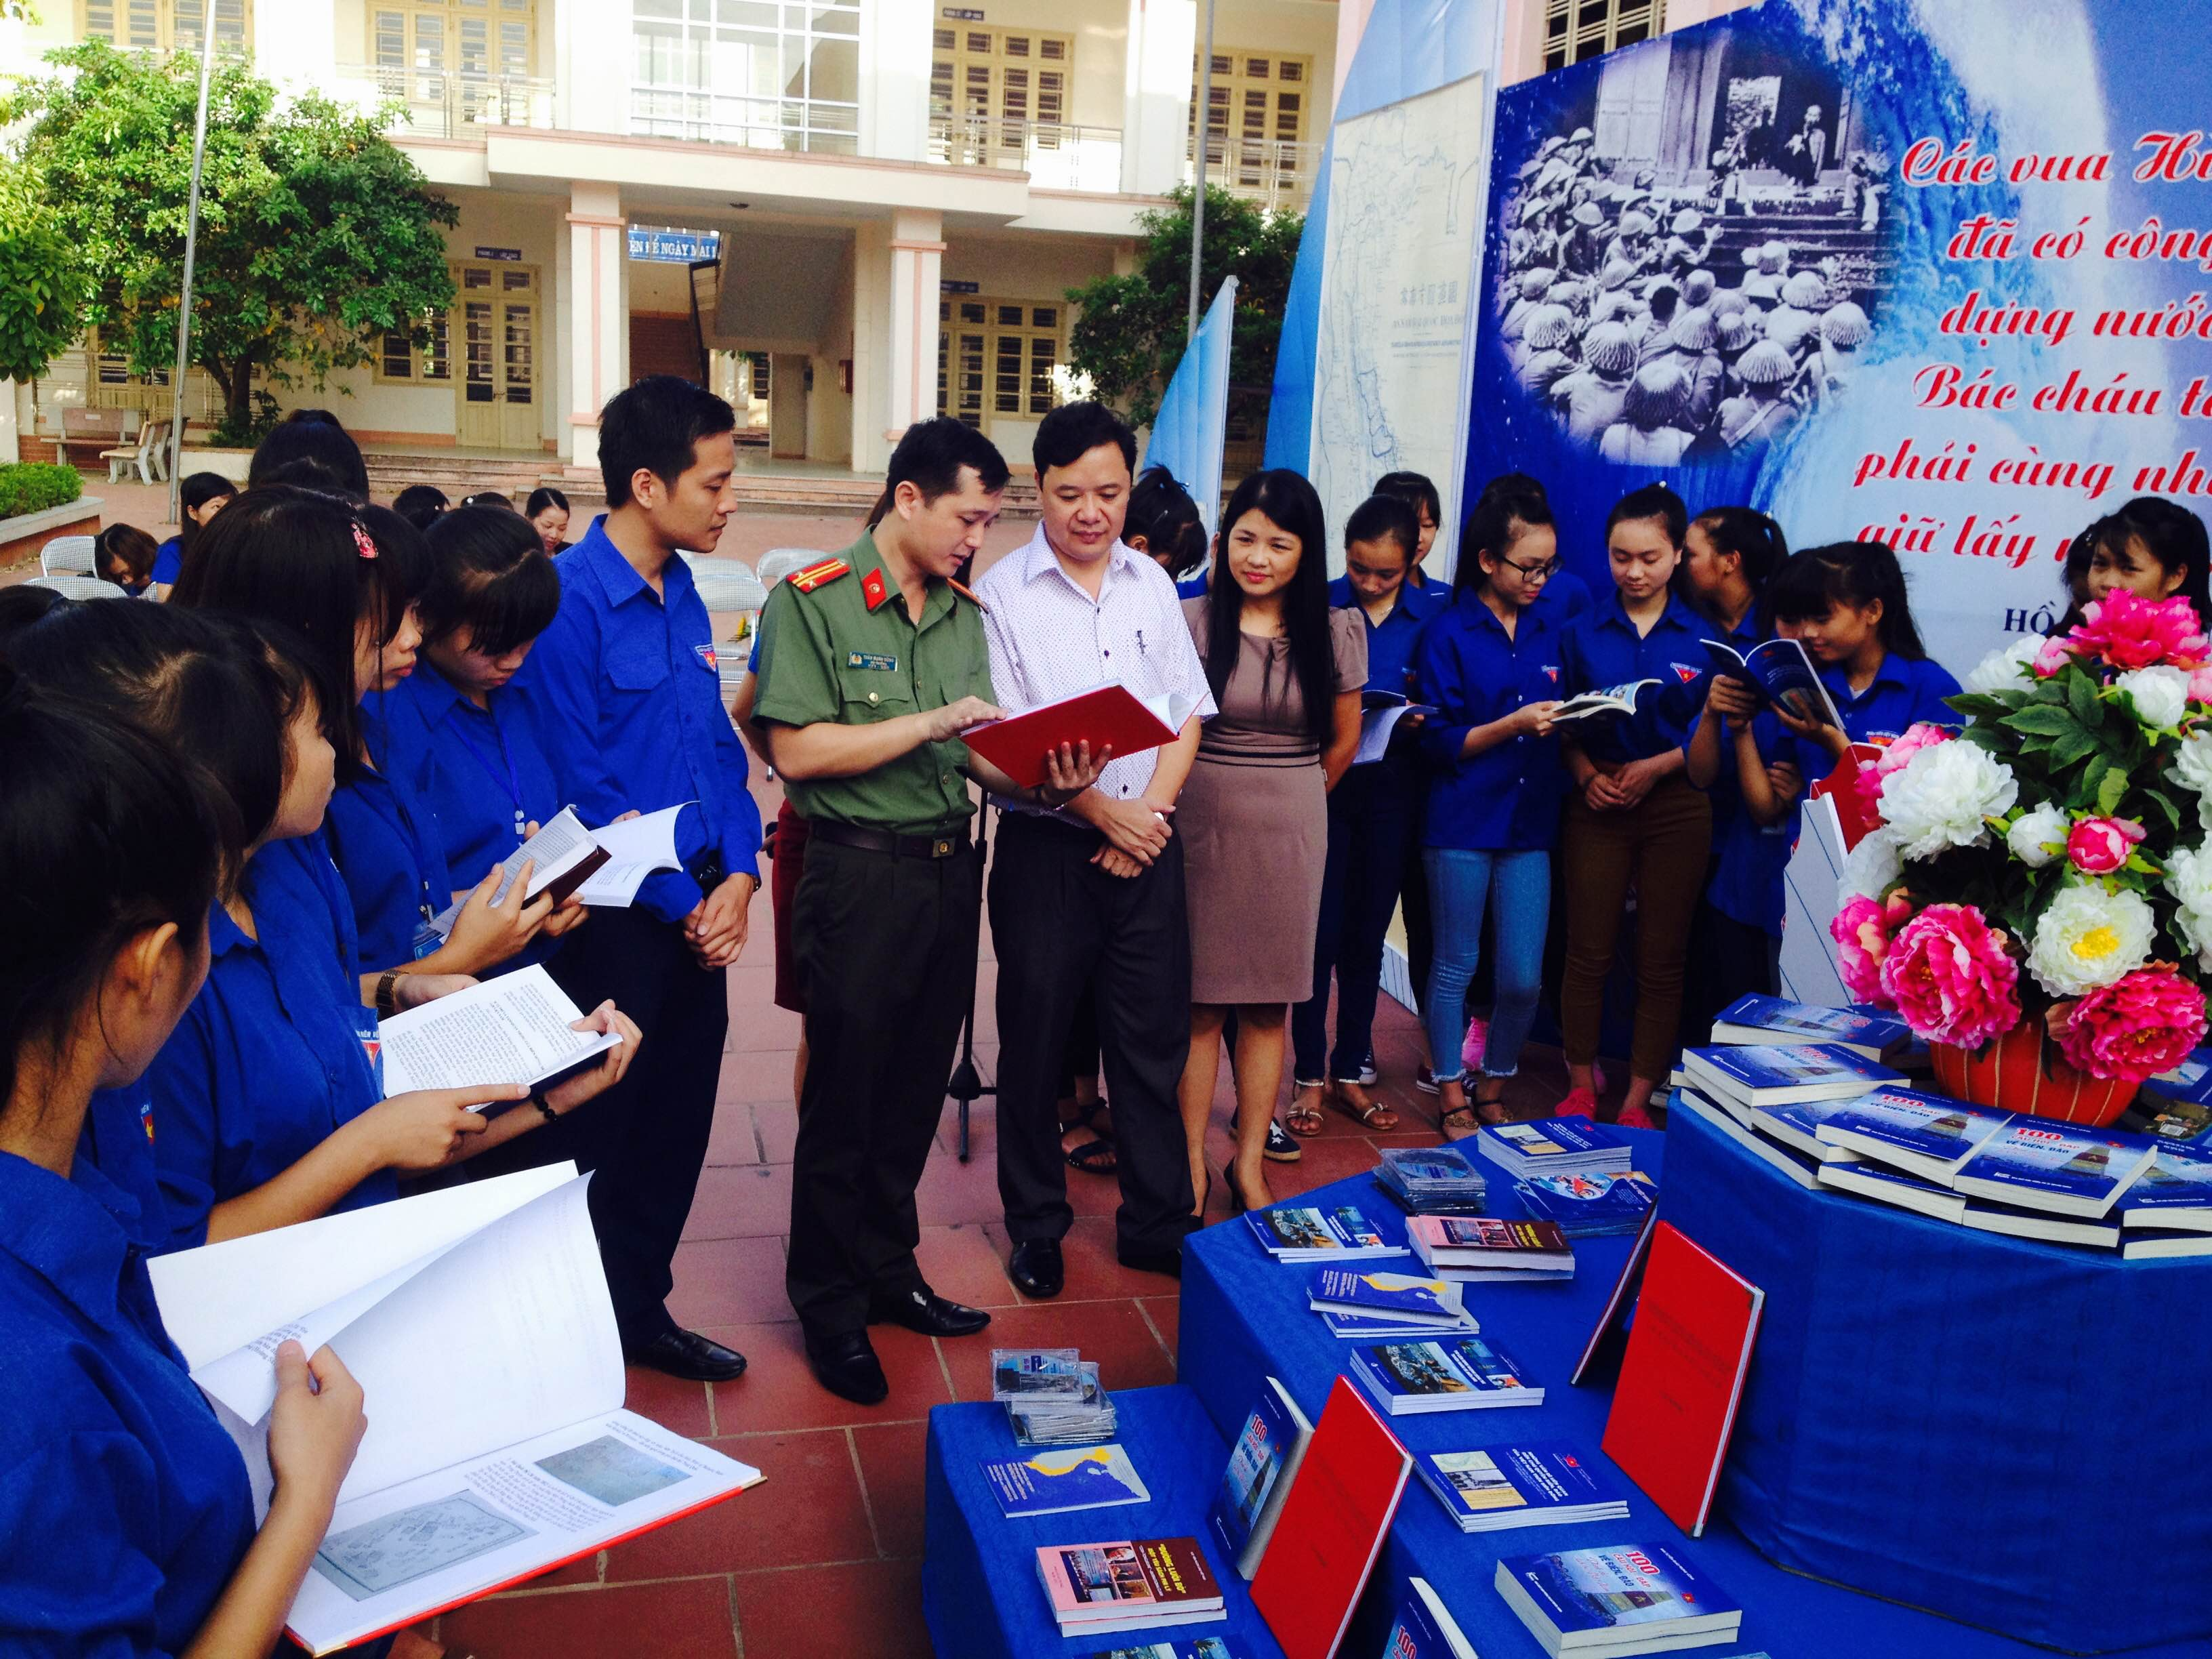 Thai Nguyen youth increase communications about nation's sea and islands